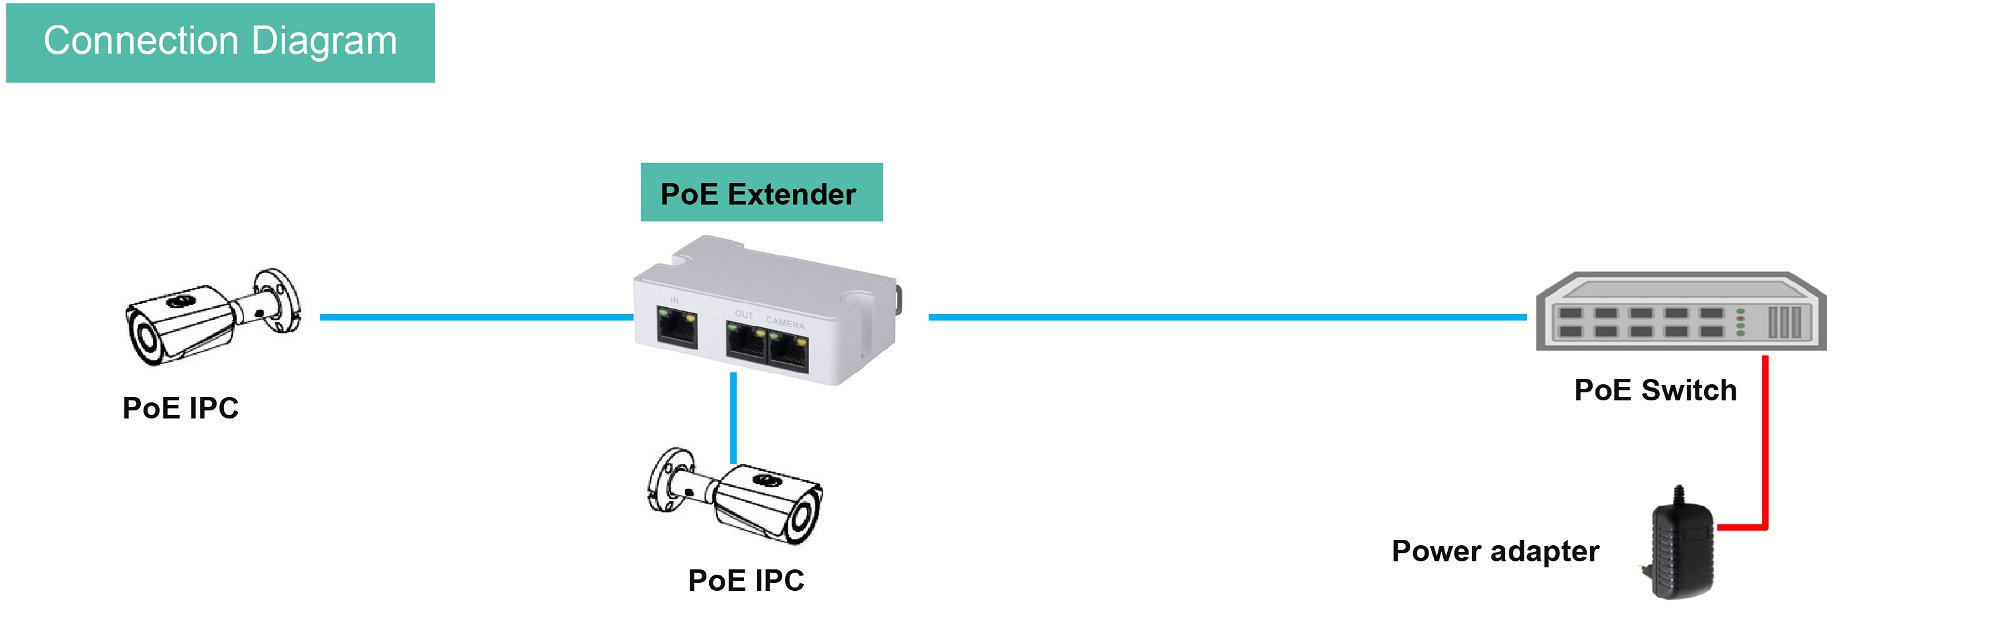 POE Extender Connection Diagram